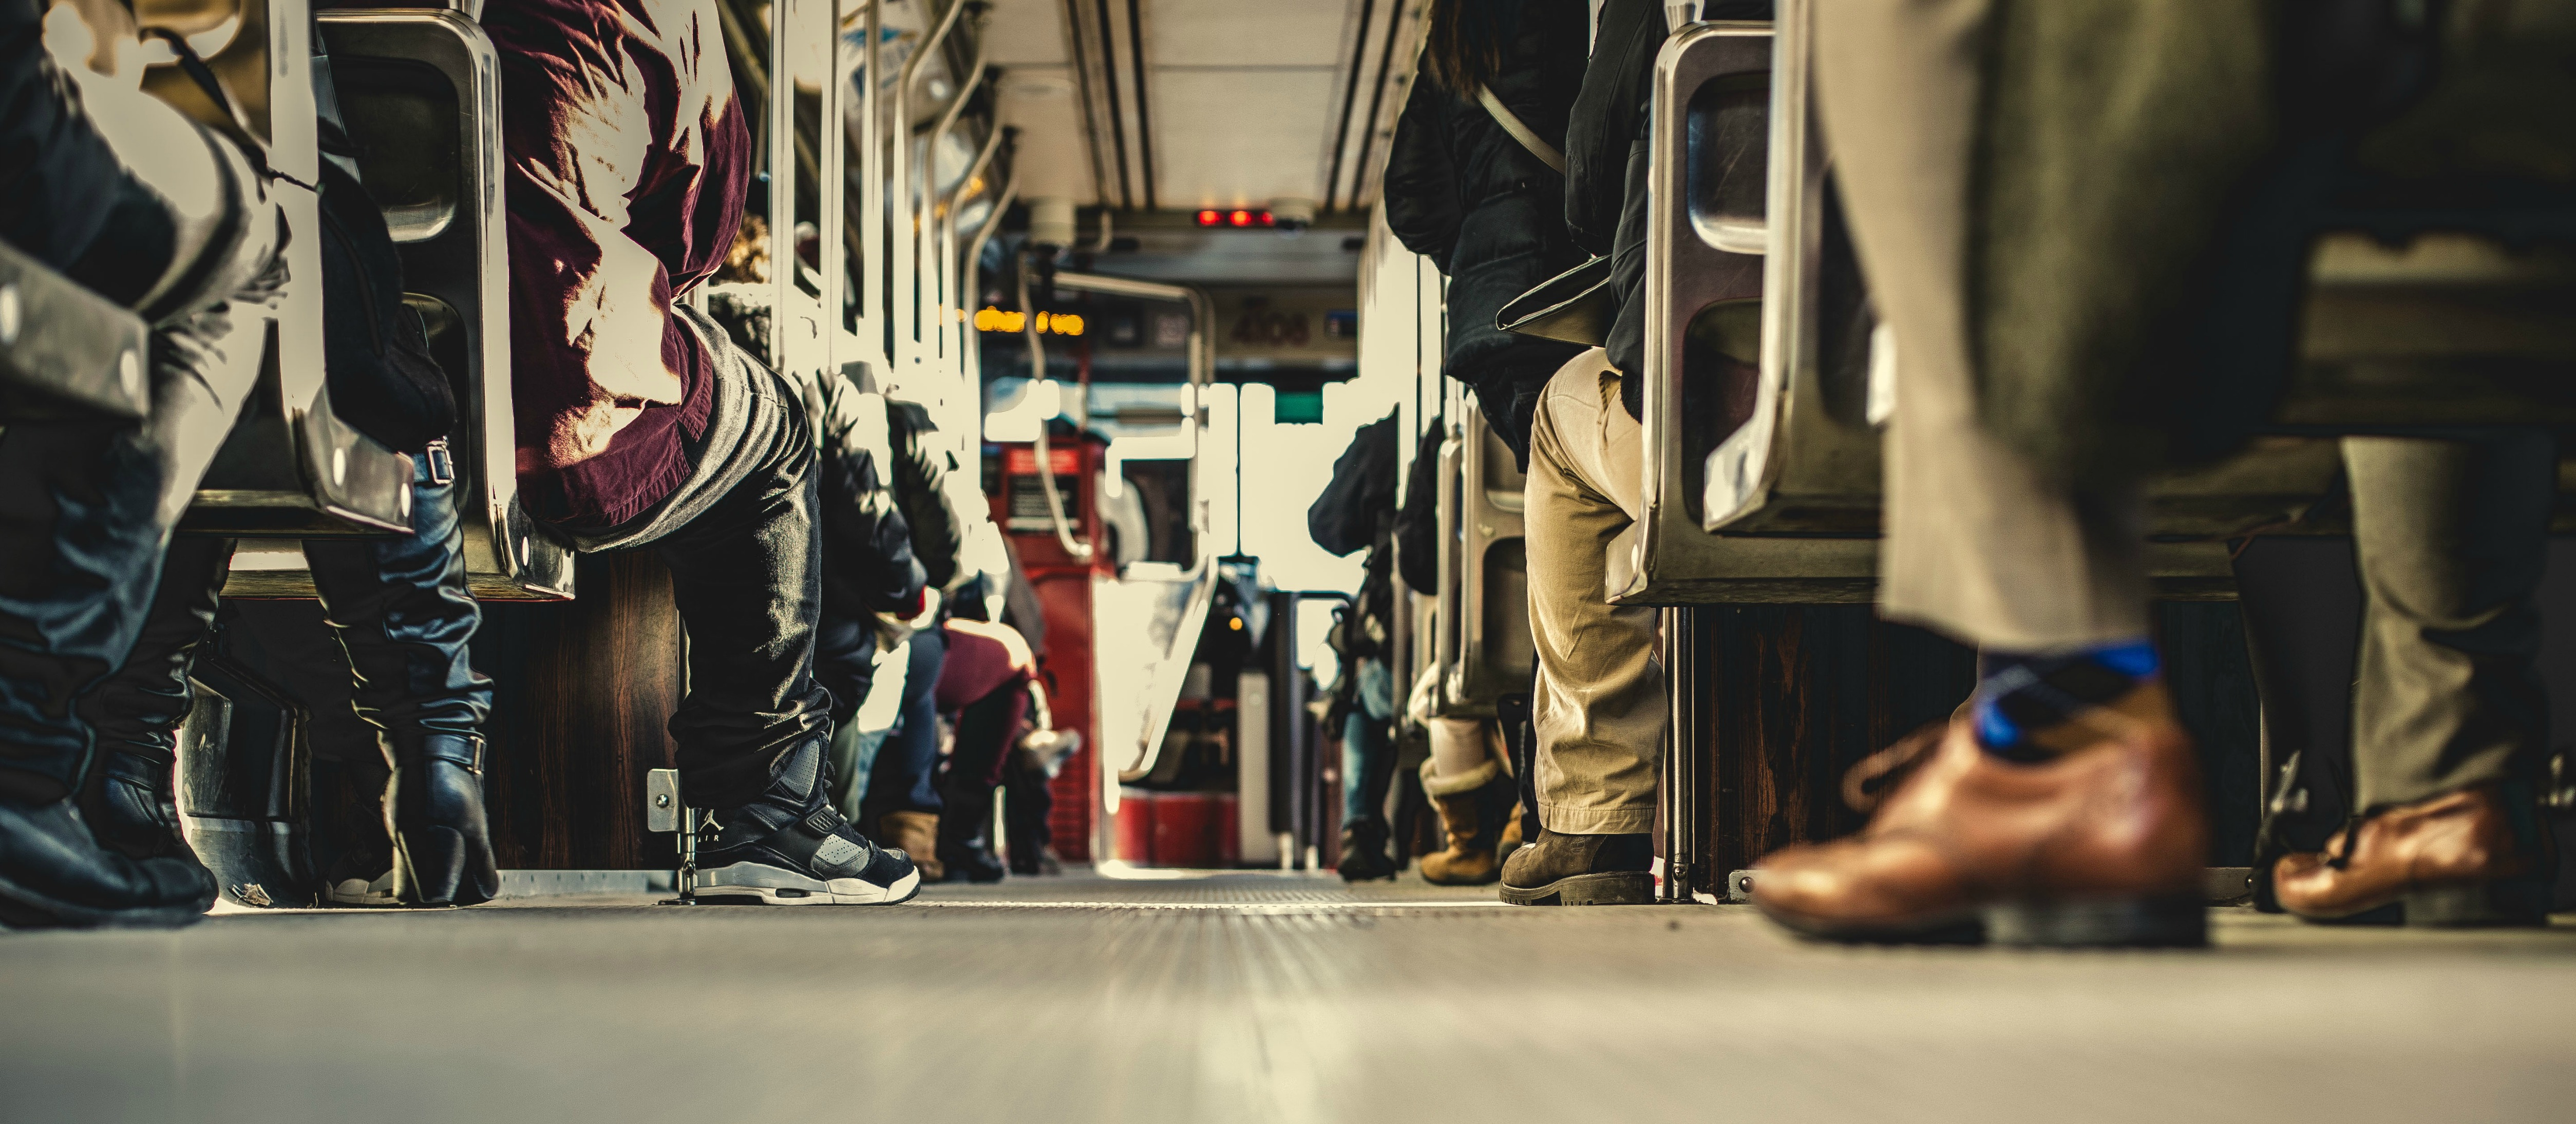 Crowdsourced public transport works and we need more of it